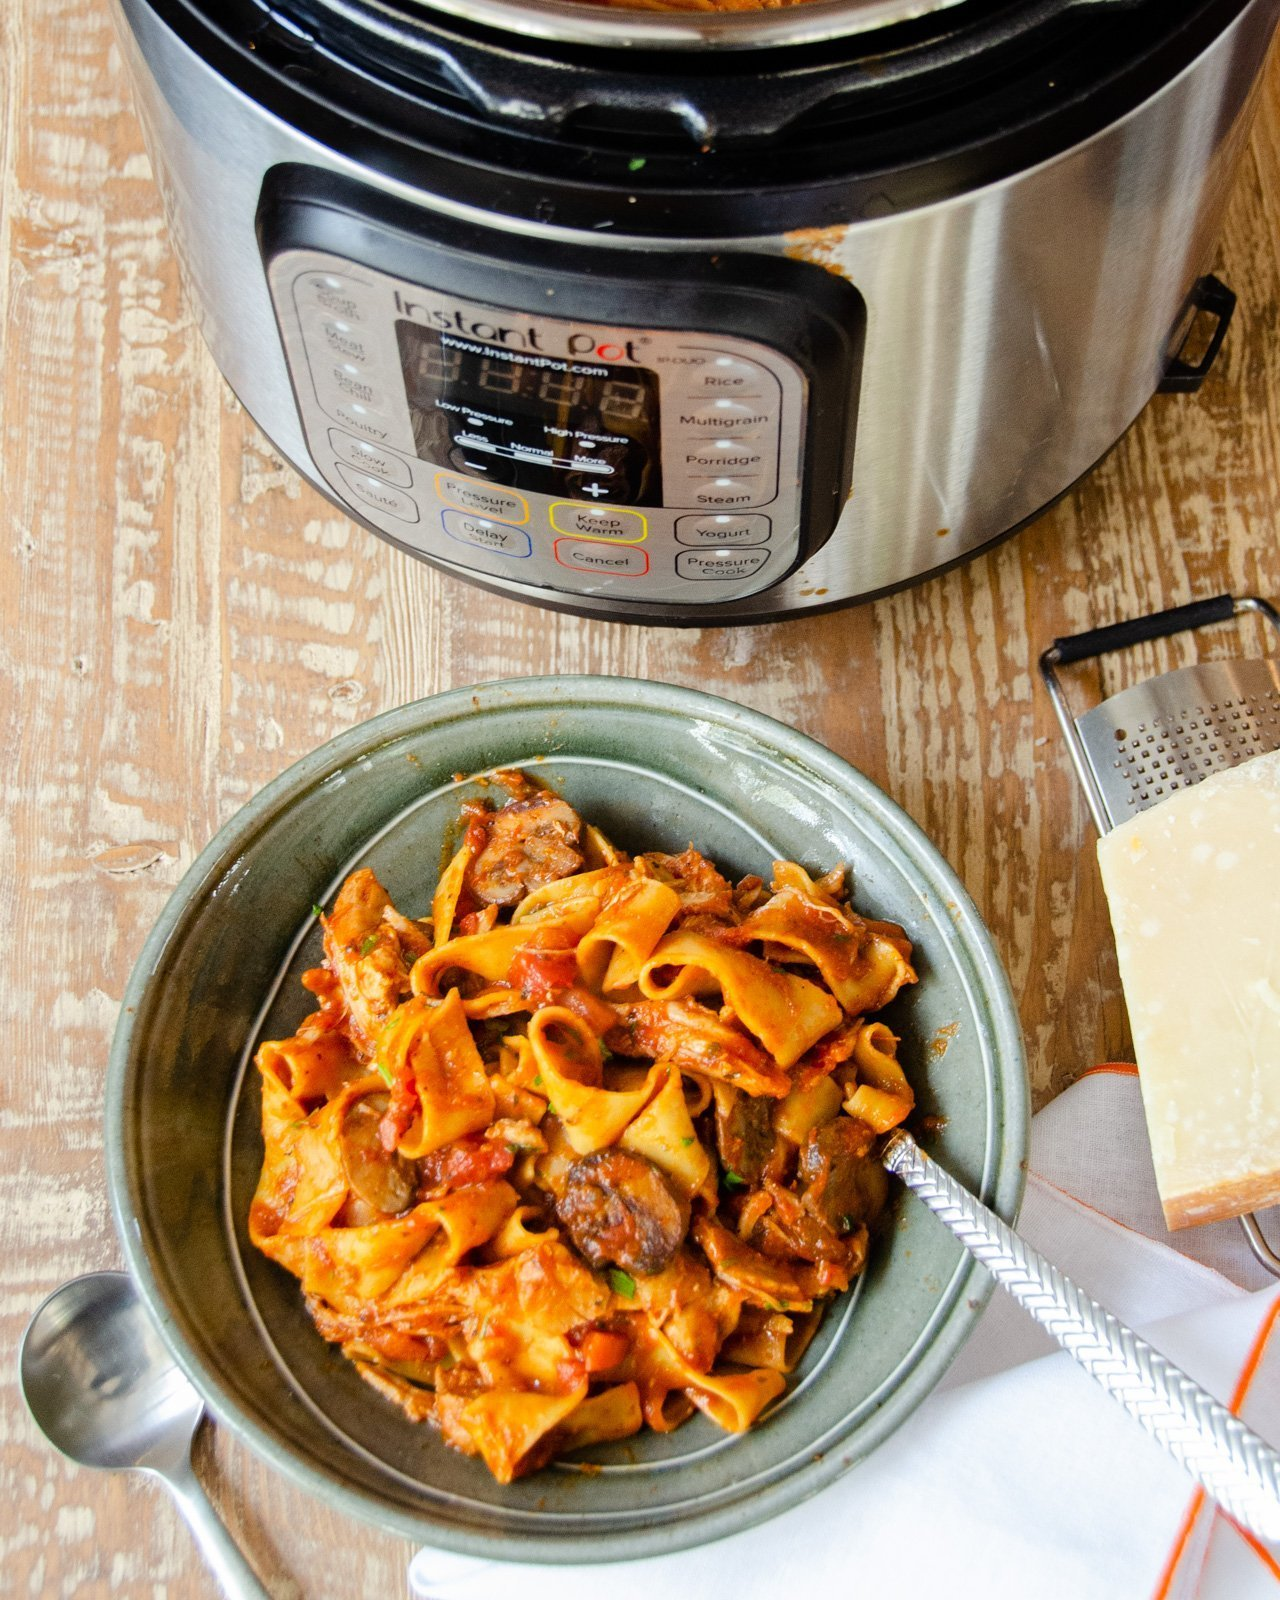 Converting Recipes to the Pressure Cooker